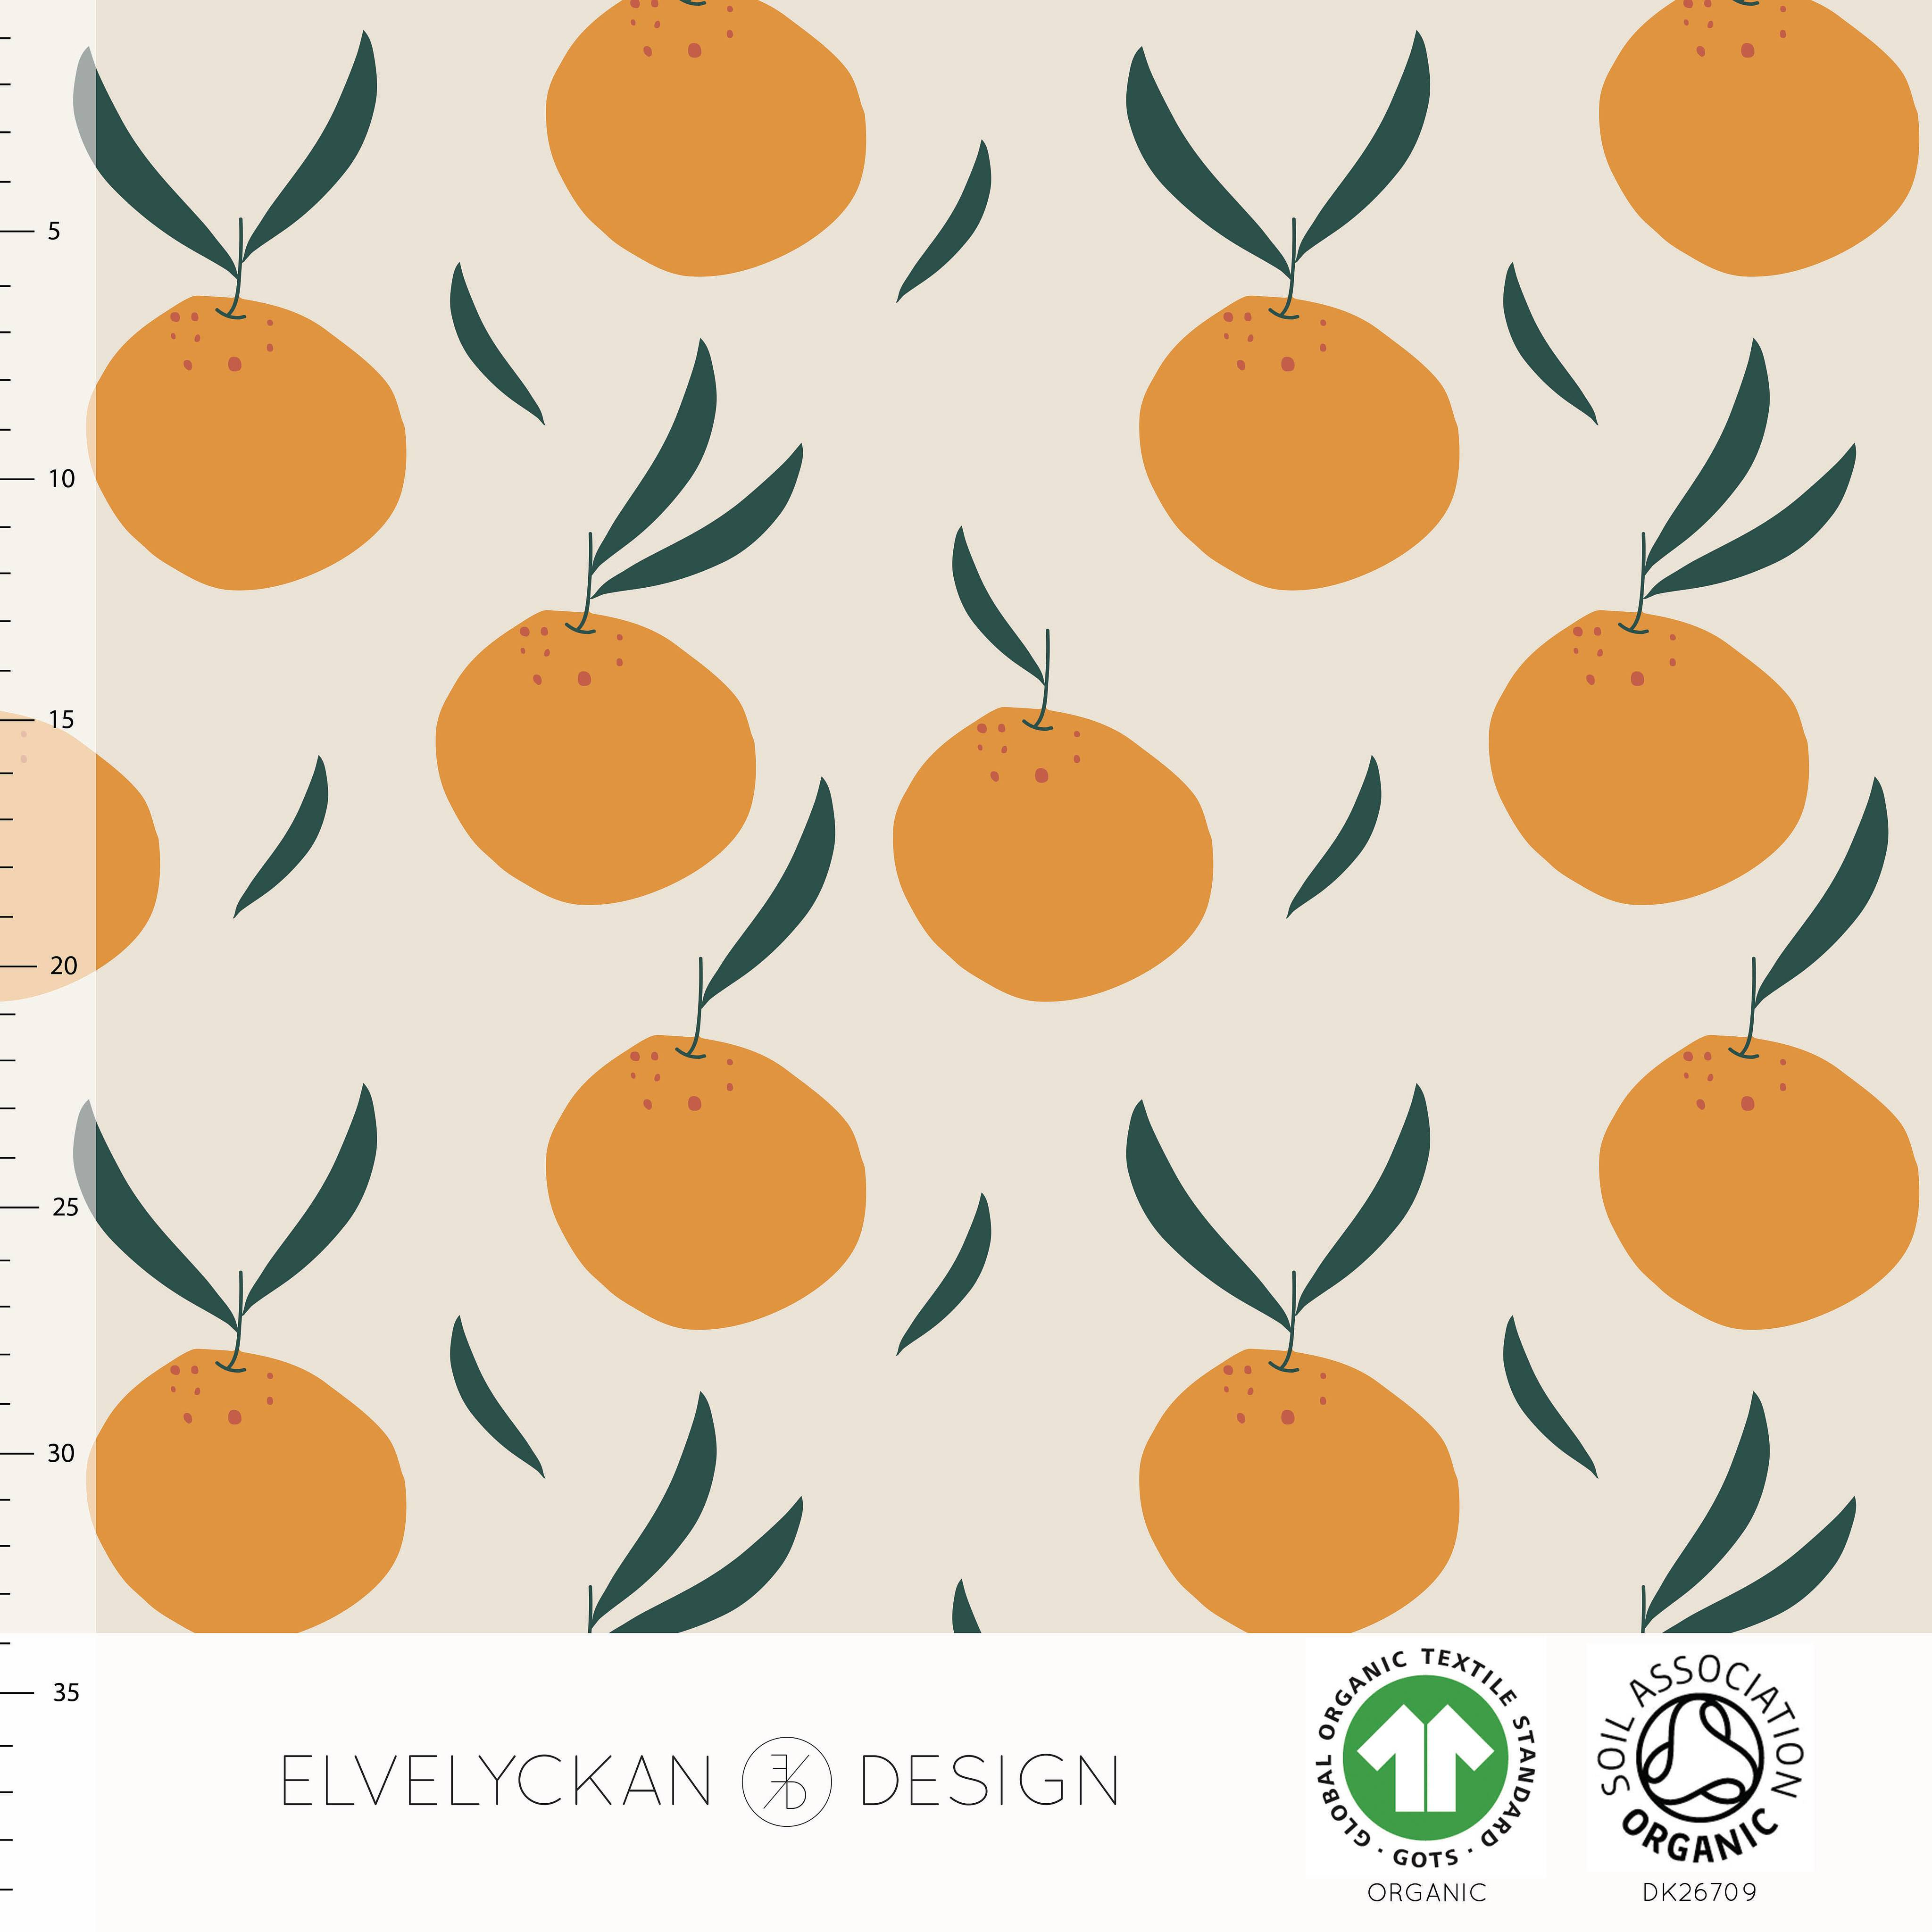 ELVELYCKAN DESIGN BIO JERSEY ORANGES - CREME / ORANGE